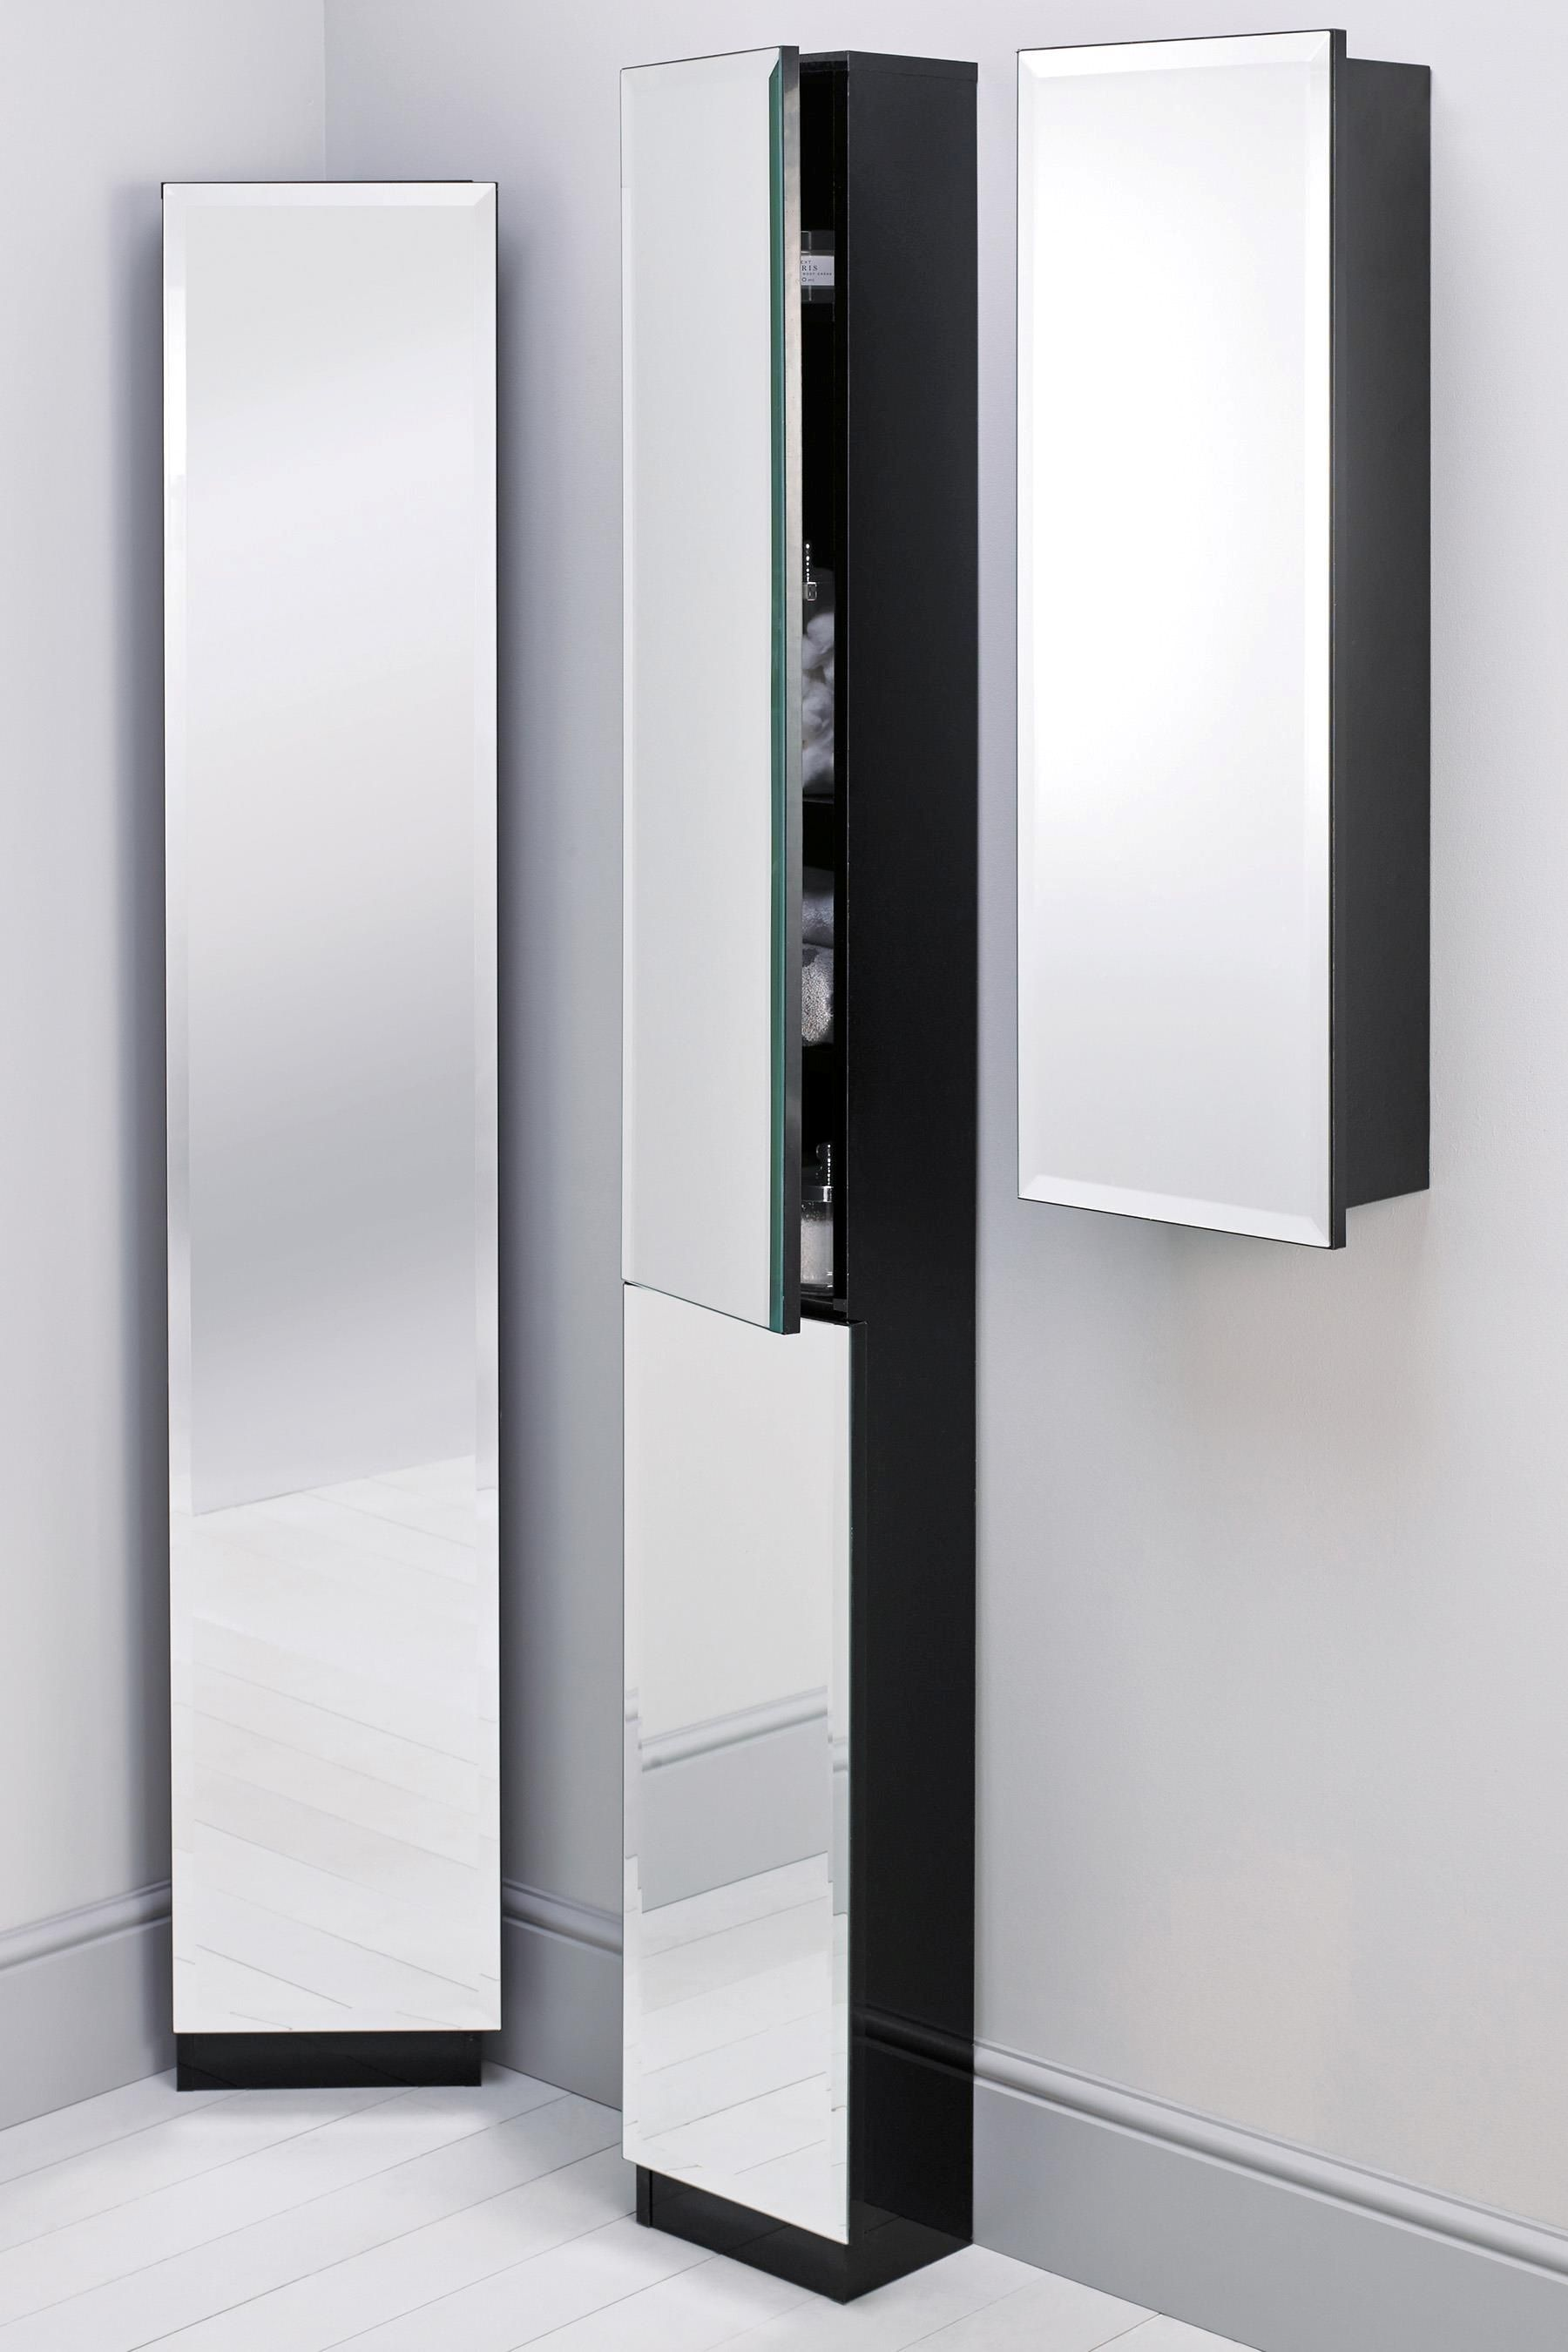 Tall Bathroom Storage Cabinet With Mirror | http://divulgamaisweb ...